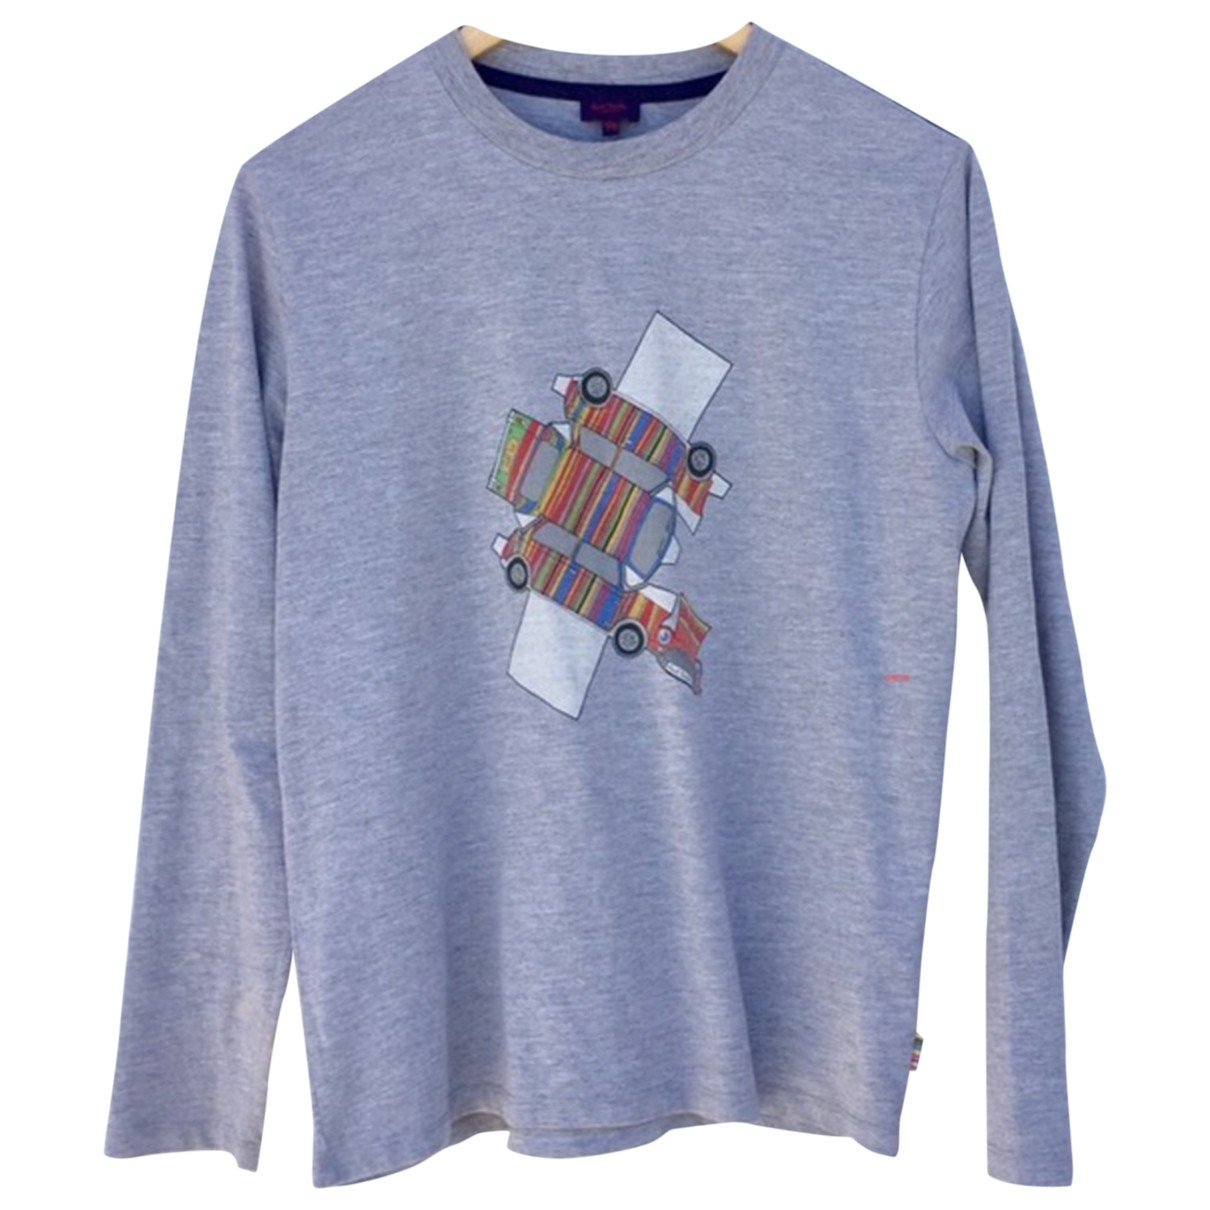 Paul Smith \N Grey Cotton  top for Kids 14 years - S FR